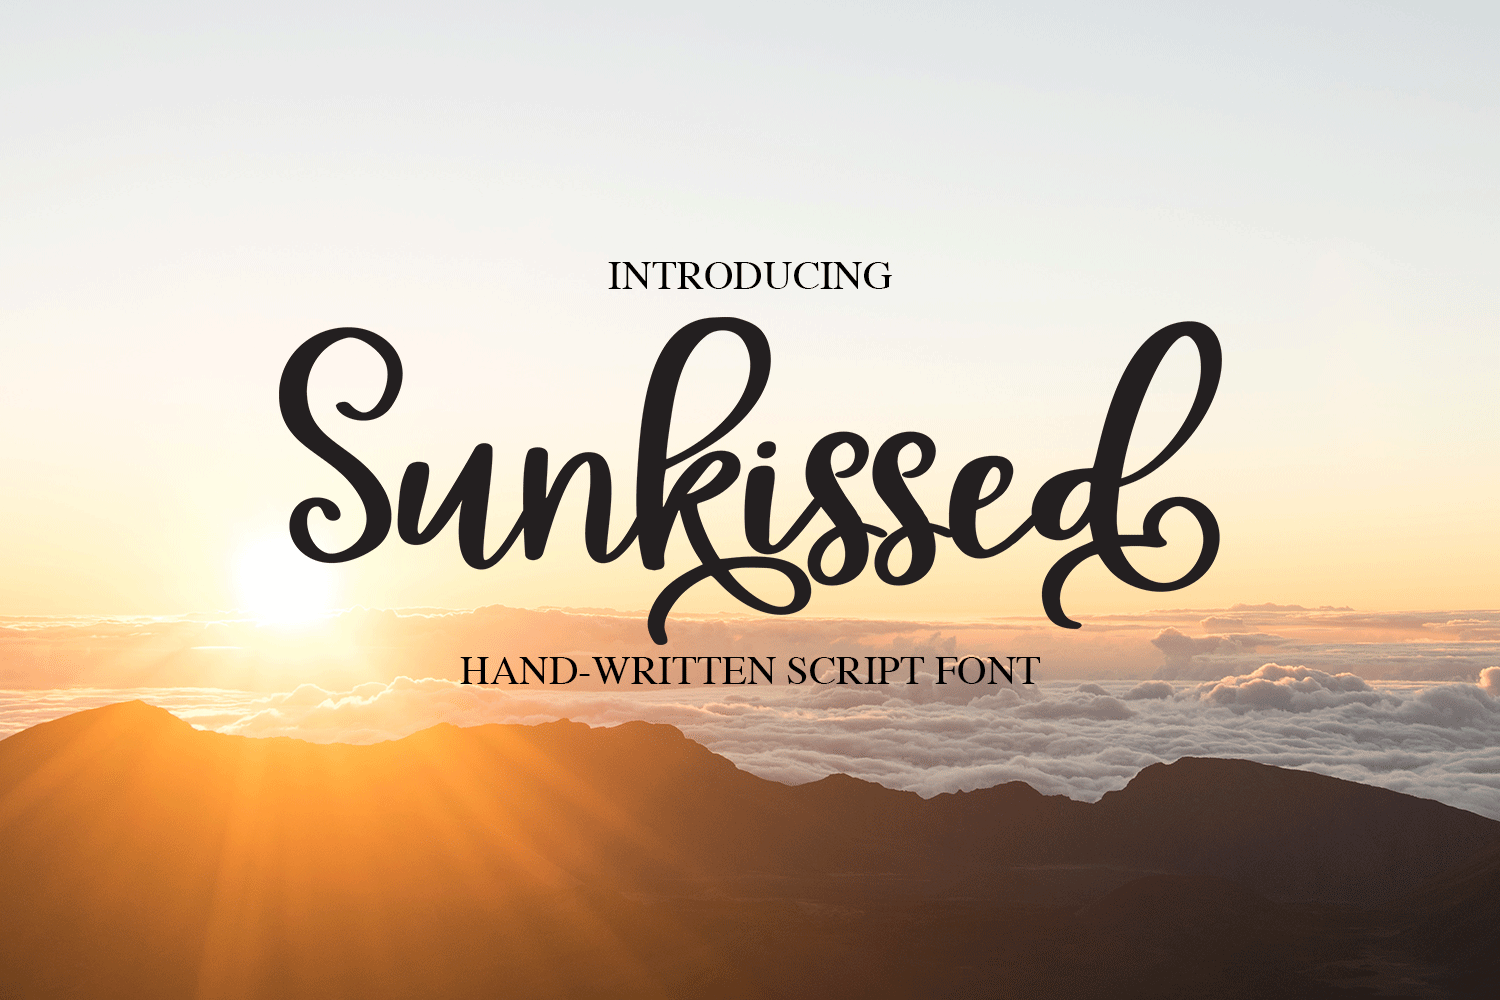 Sunkissed Script - A Hand-Written Calligraphy Font example image 1